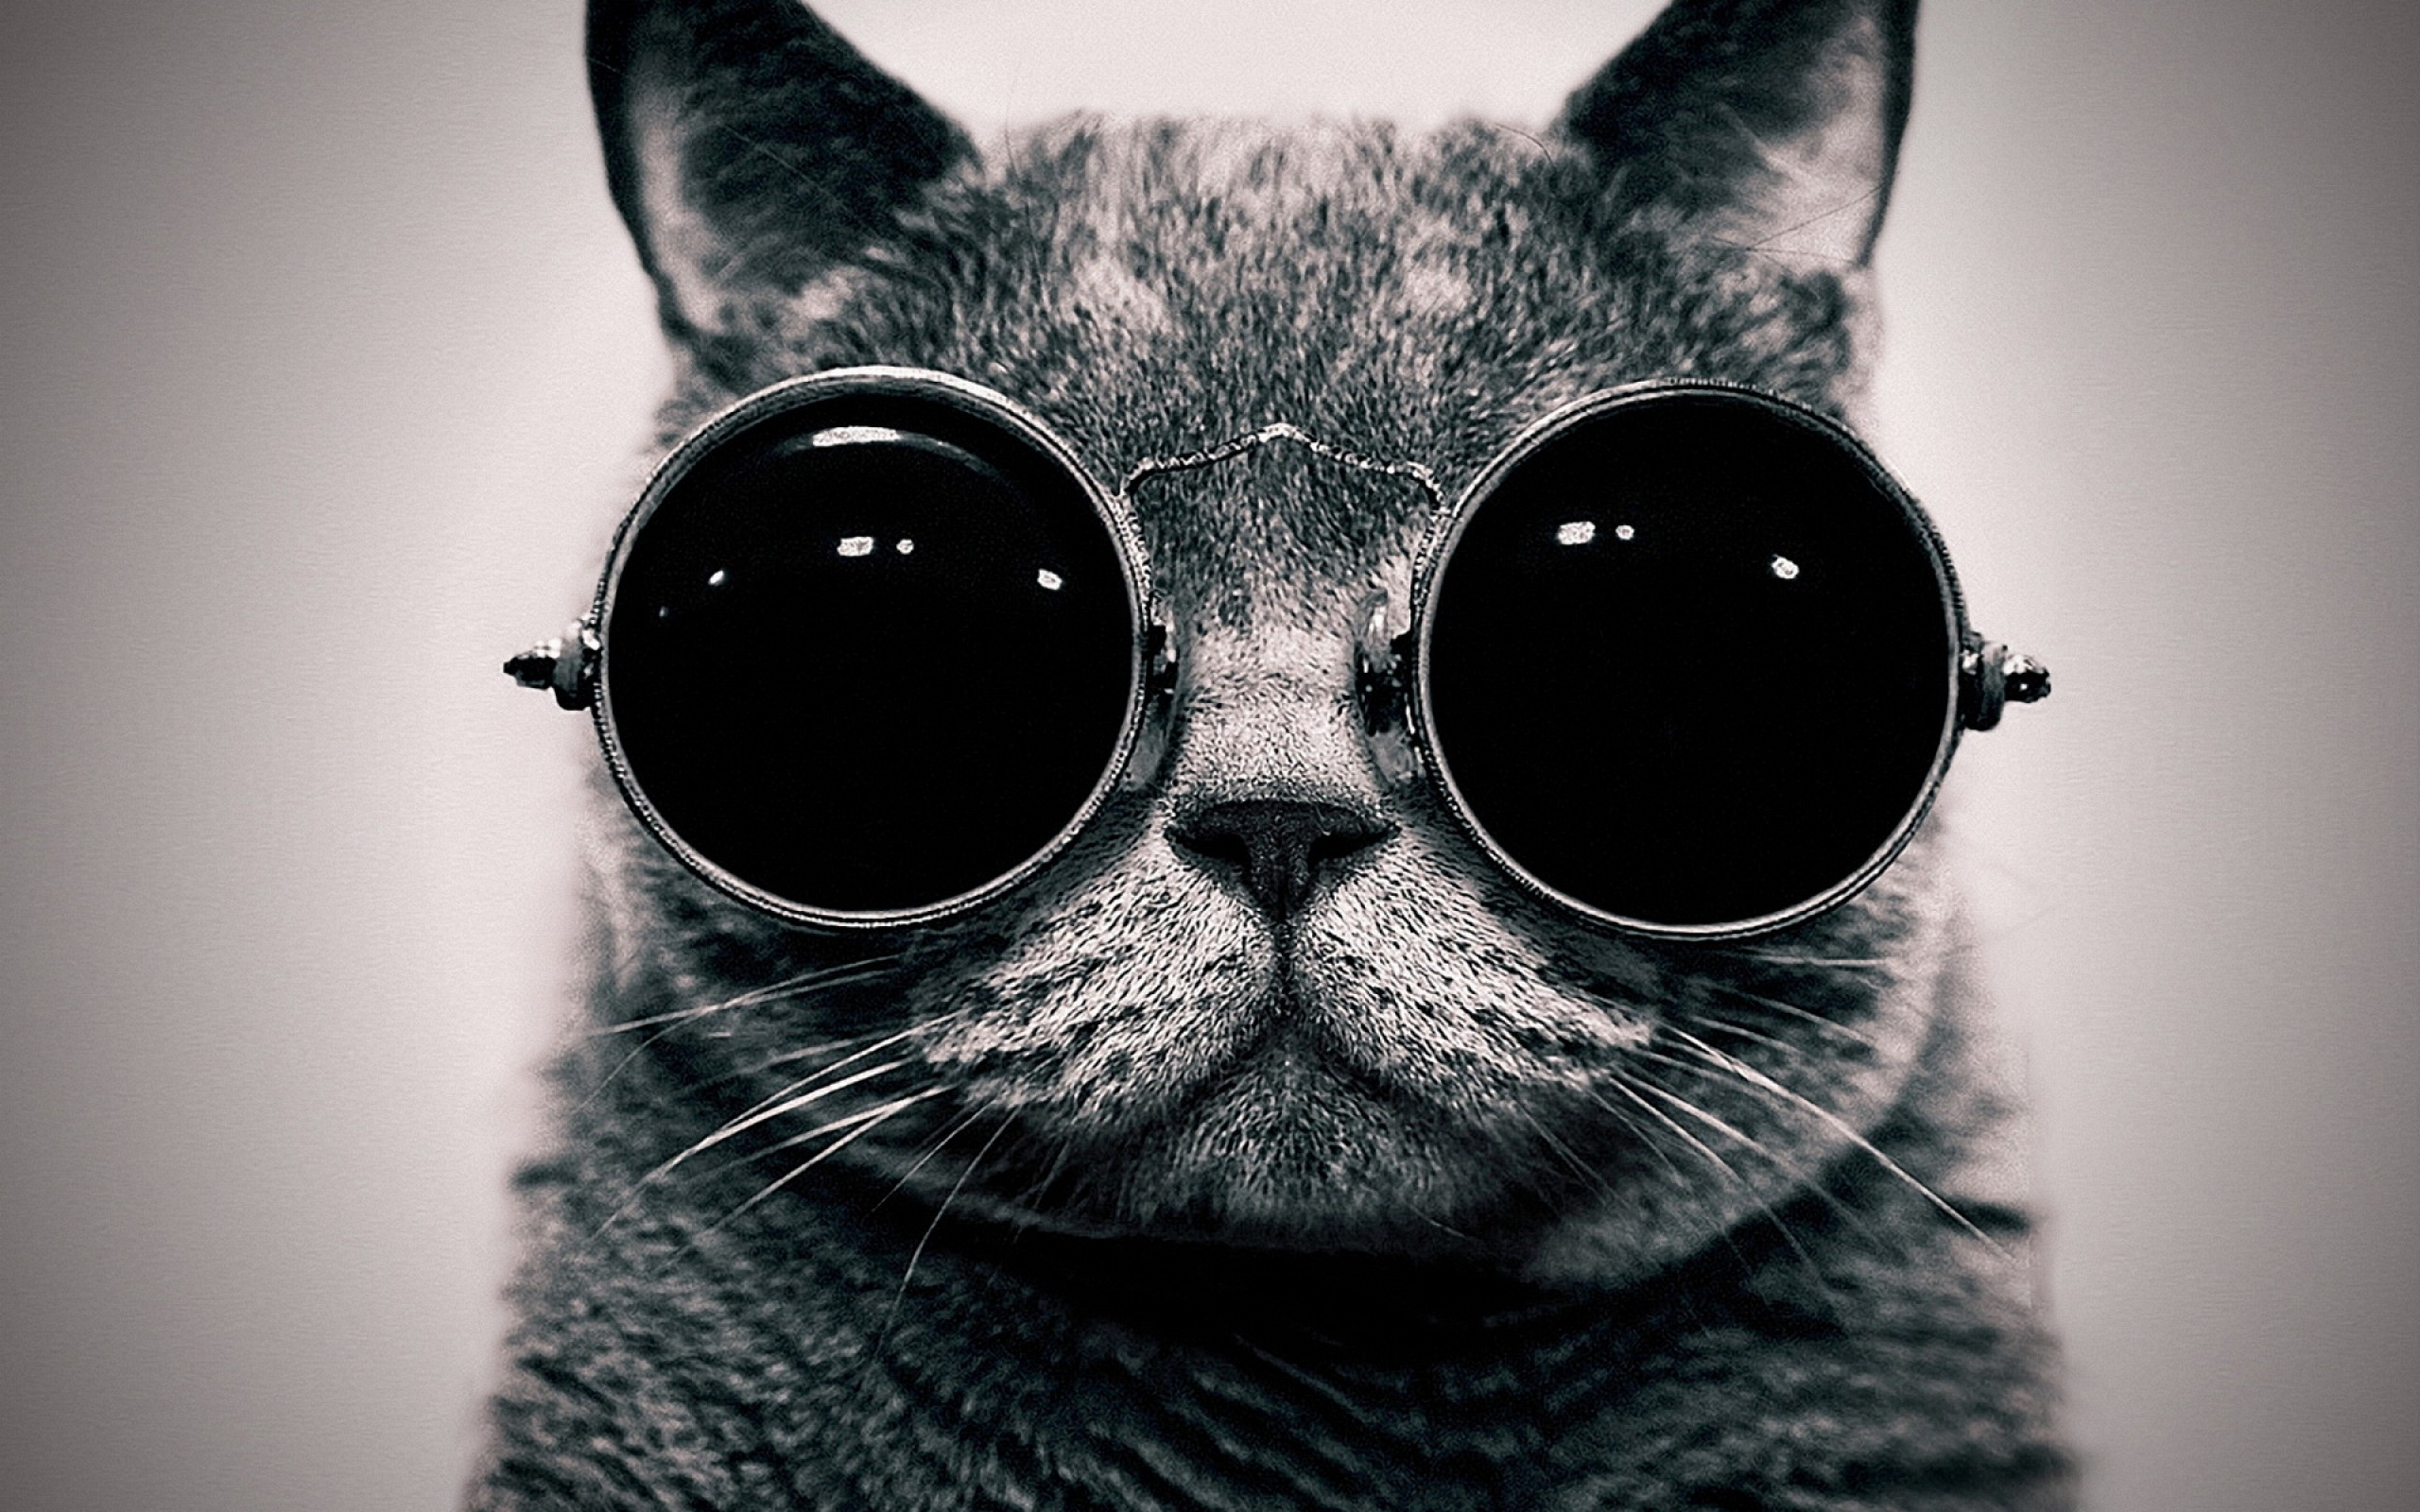 wallpaper-cat-in-the-glasses-2560x1600